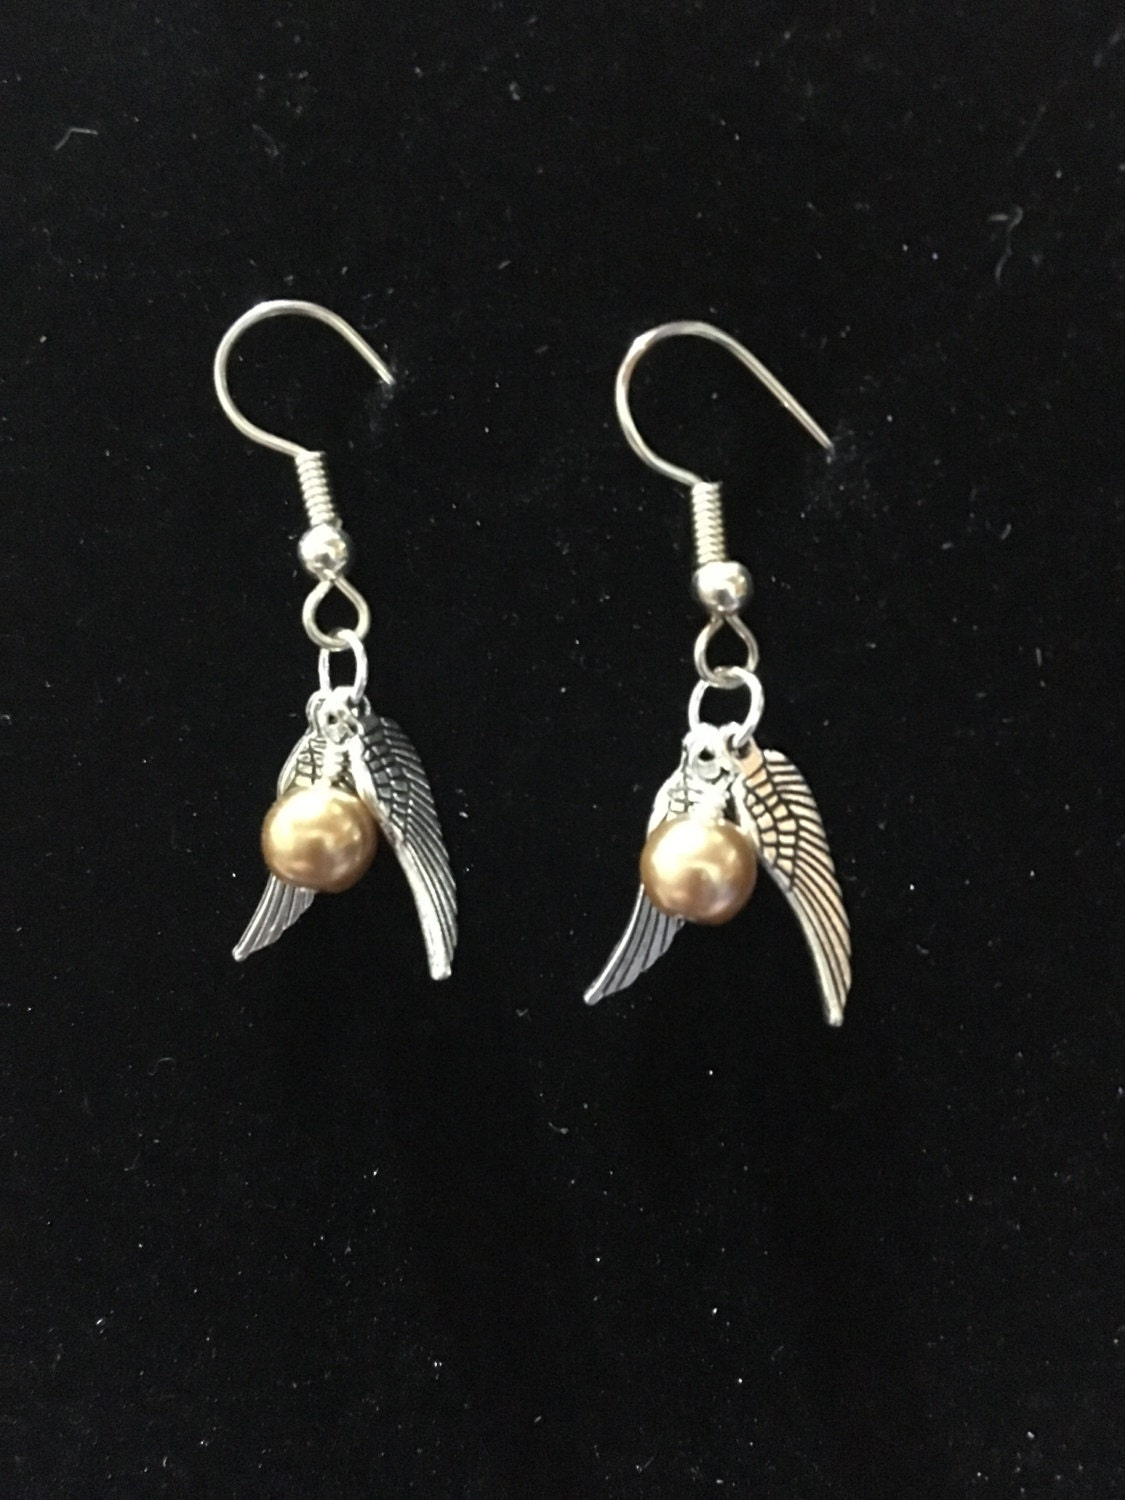 golden snitch earrings small golden snitch earrings for harry potter fans 8683